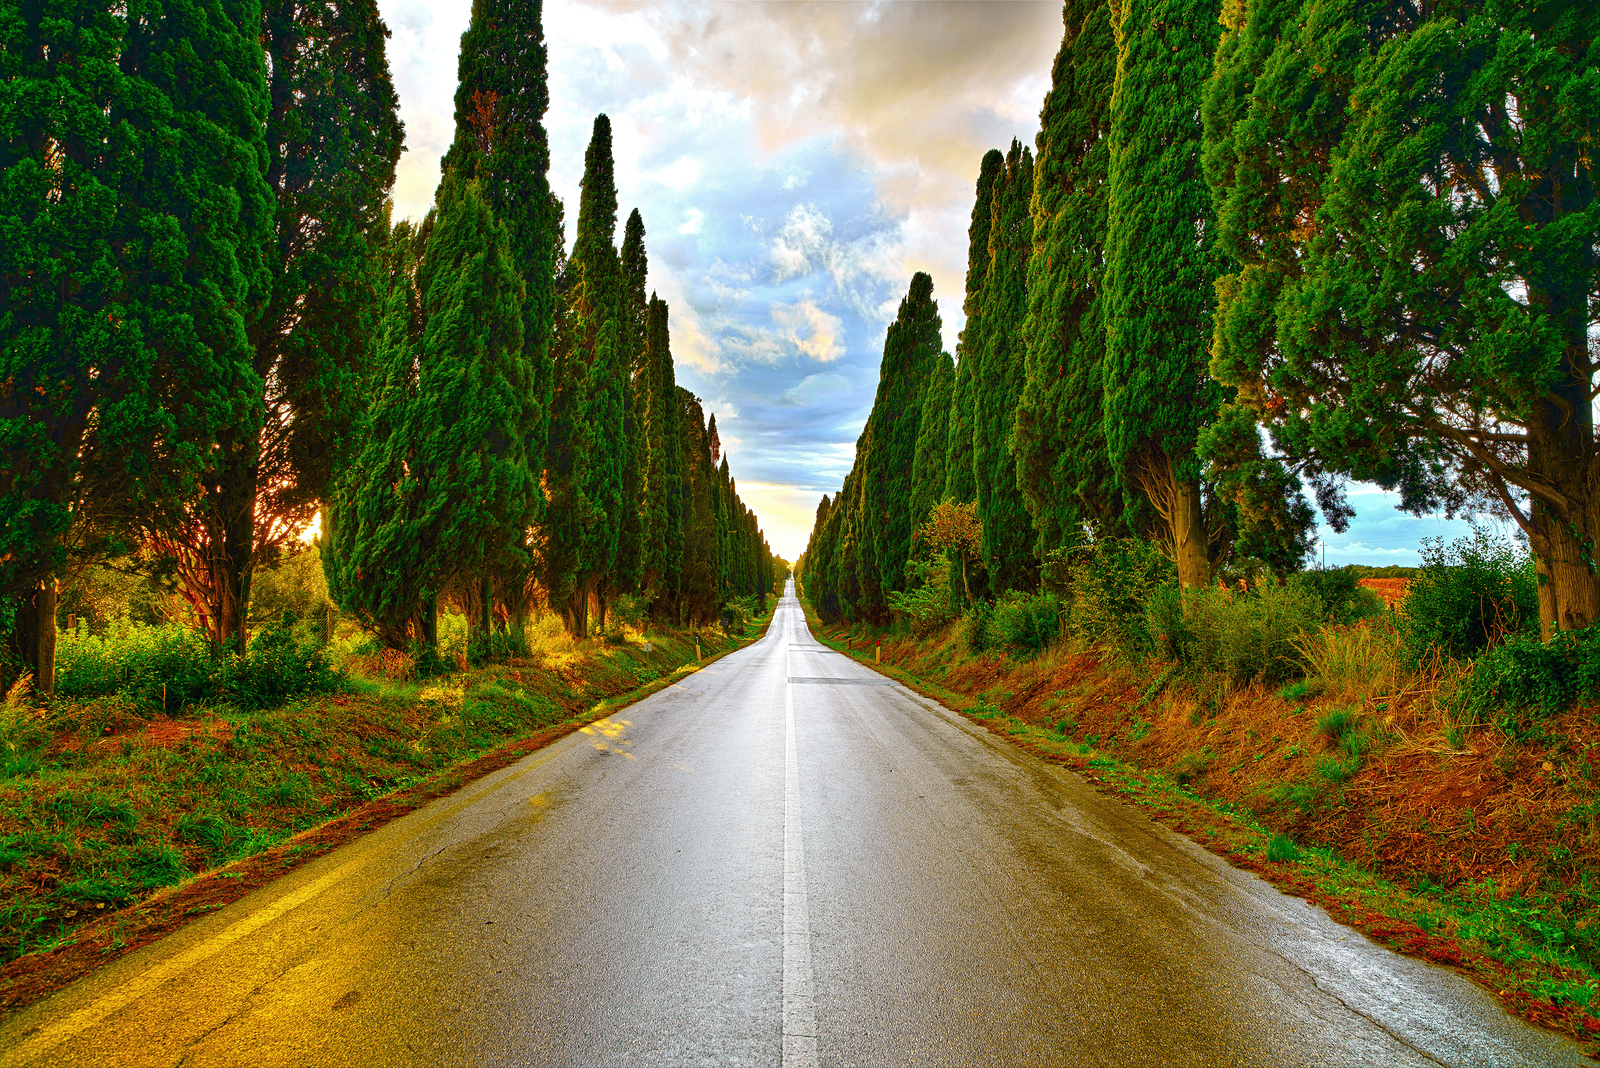 Bolgheri famous cypresses trees straight boulevard landscape. Maremma landmark Tuscany Italy Europe. This boulevard is famous for Carducci poem.